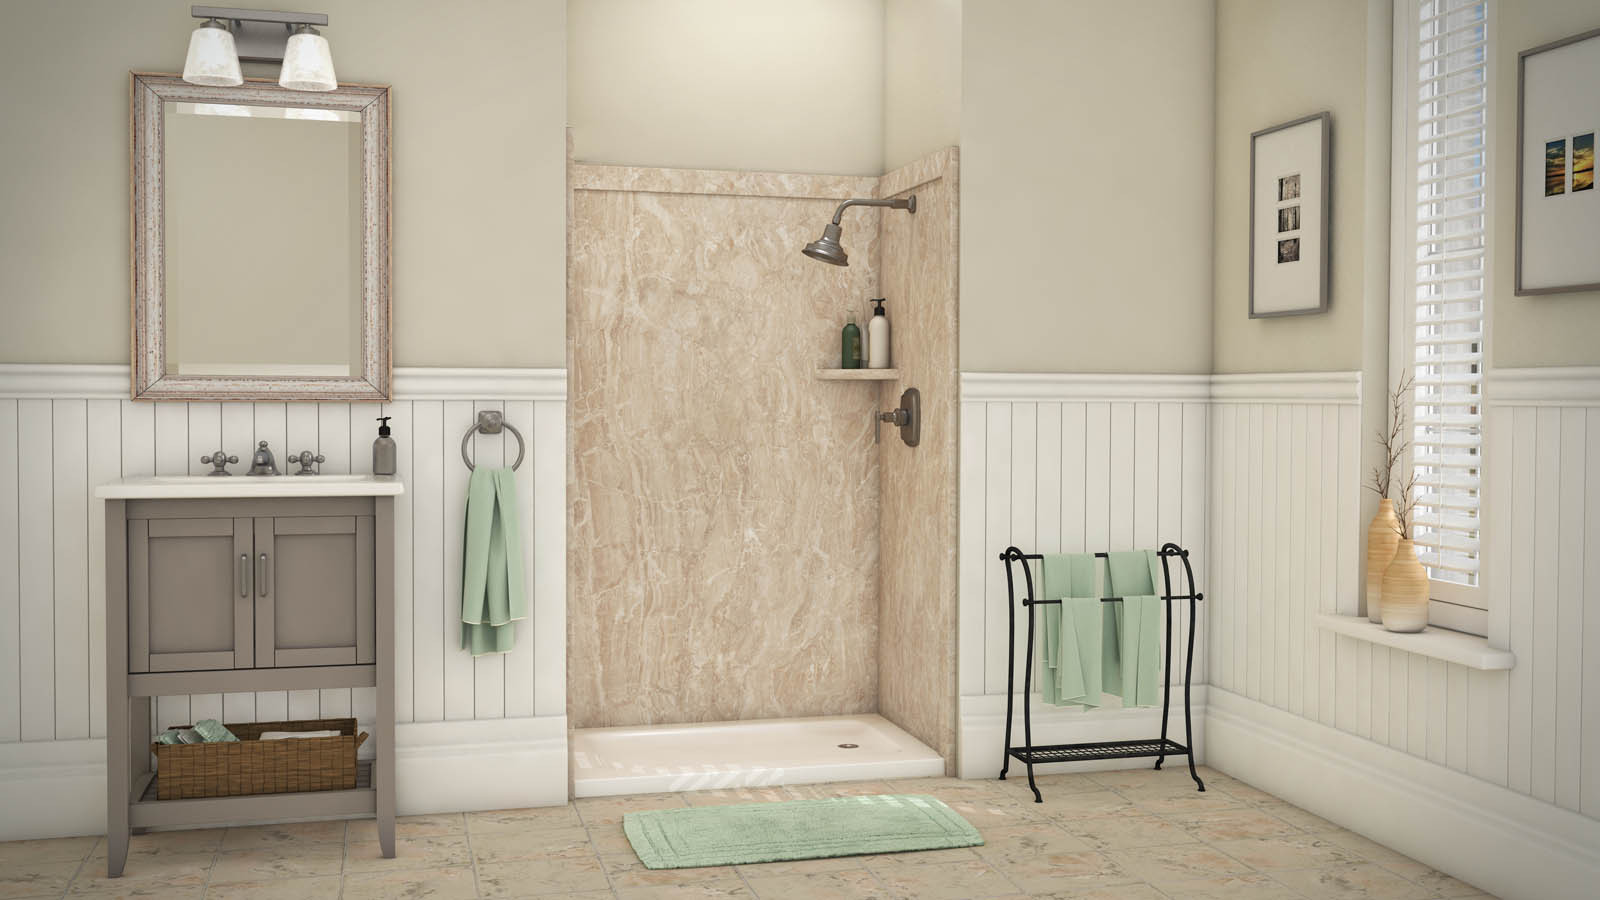 Best ideas about DIY Wall Panels . Save or Pin DIY Shower & Tub Wall Panels & Kits Innovate Building Now.